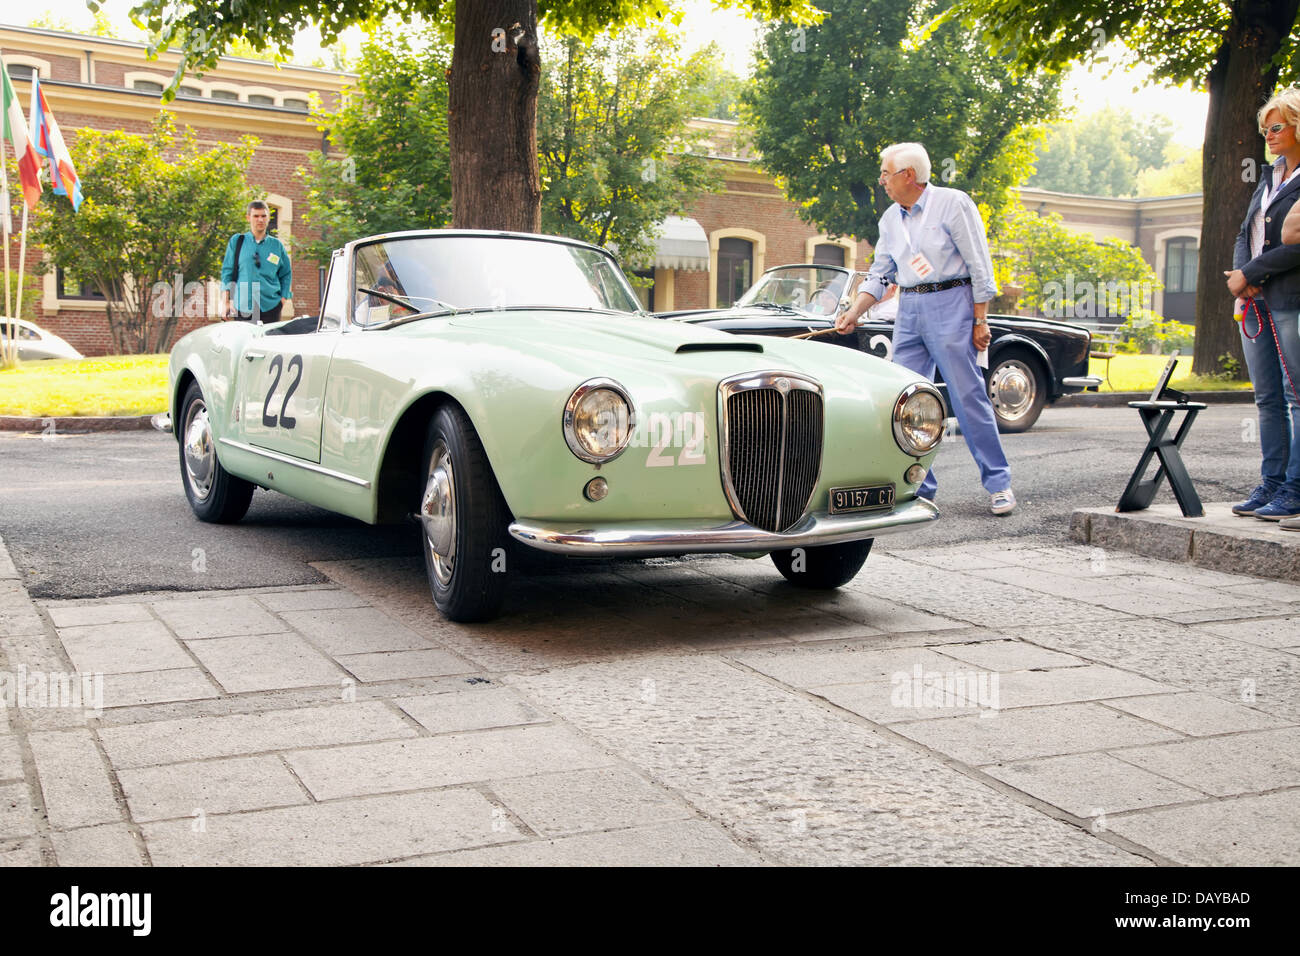 https://c8.alamy.com/comp/DAYBAD/1956-lancia-aurelia-b-24-at-the-start-of-race-memorial-bordino-in-DAYBAD.jpg